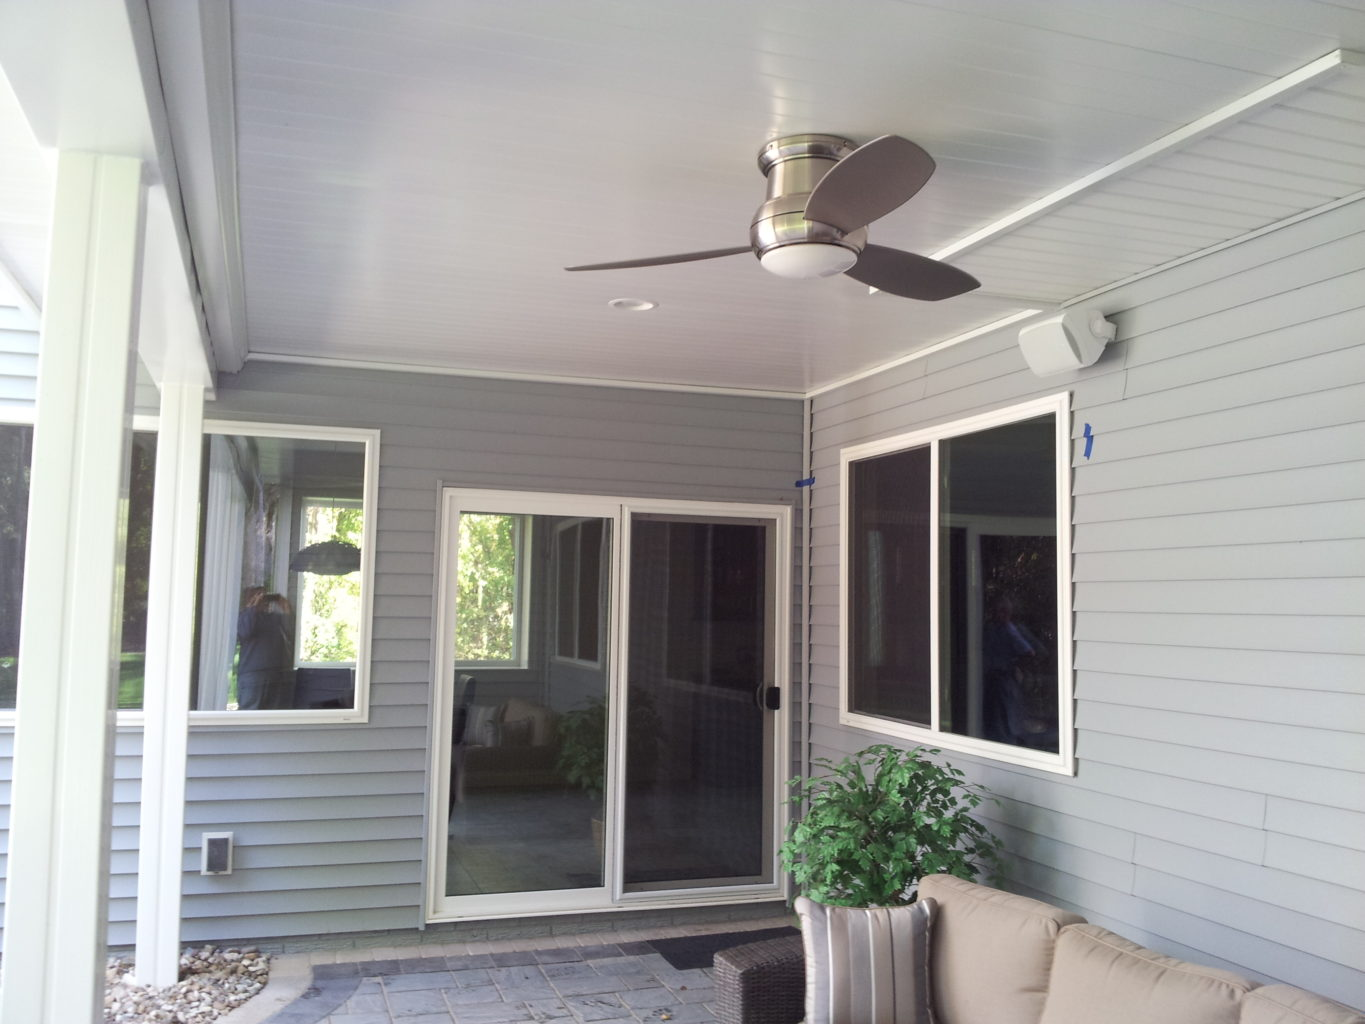 Underdeck ceiling fan and speakers